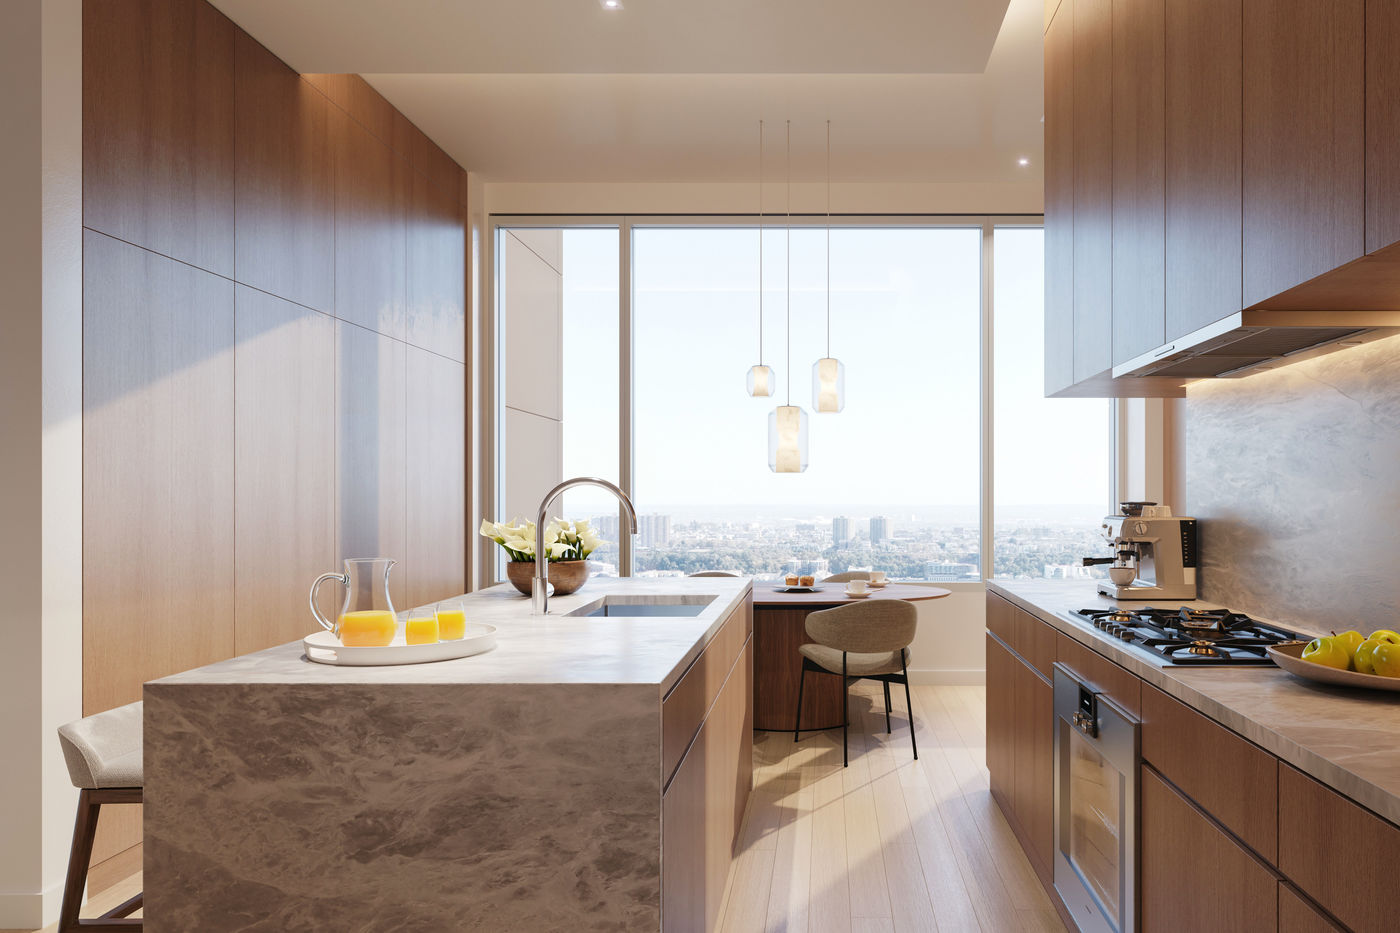 Gabellini Sheppard Associates kitchen design for Alvaro Siza building 611 West 56th Street in Hell's Kitchen, New York City